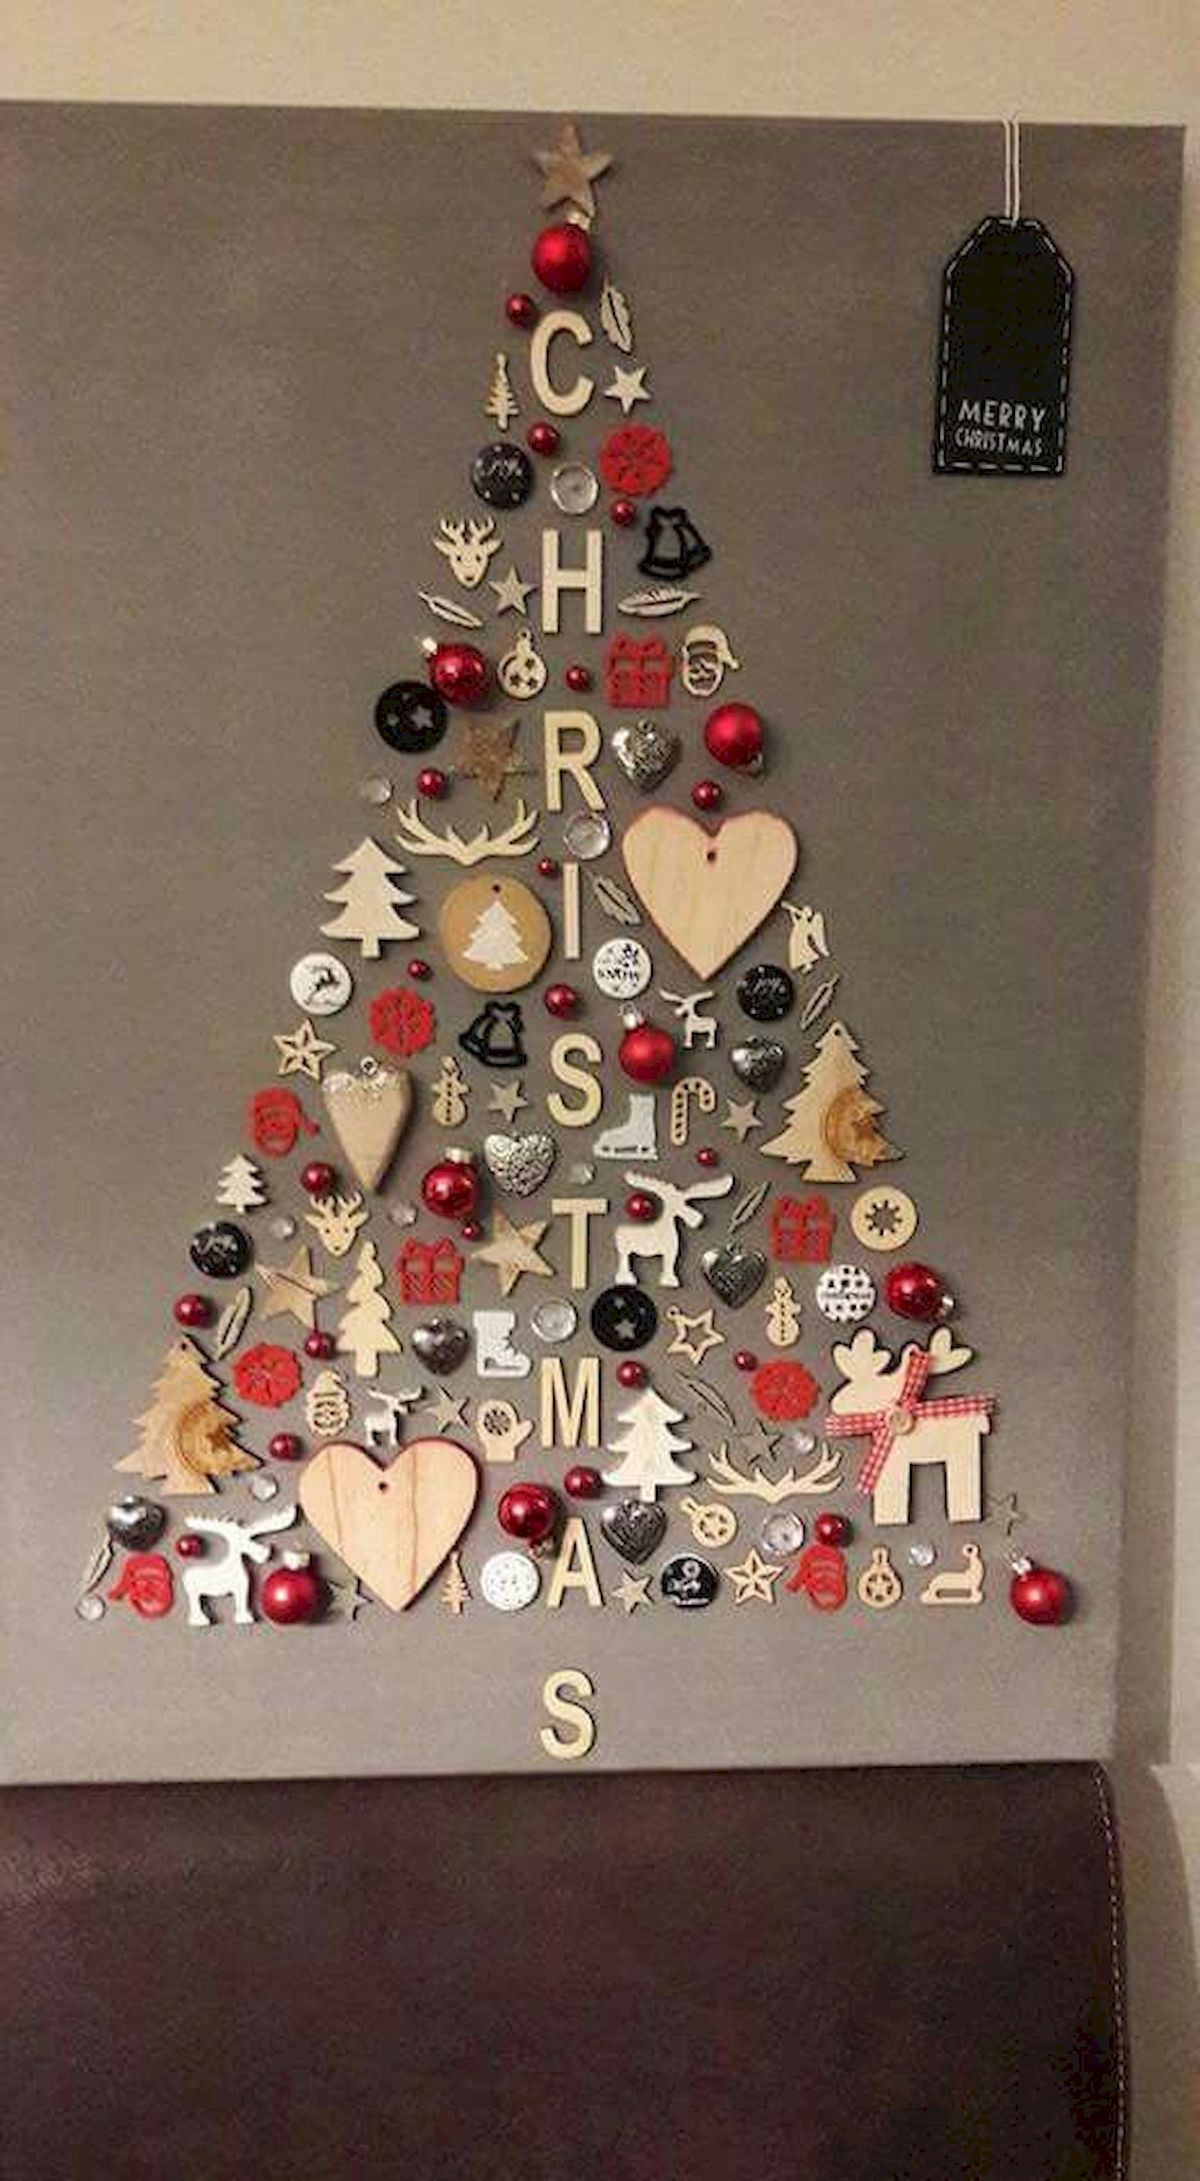 60 Awesome Wall Art Christmas Decor Ideas 44 Classic Christmas Tree Wall Christmas Tree Diy Christmas Tree